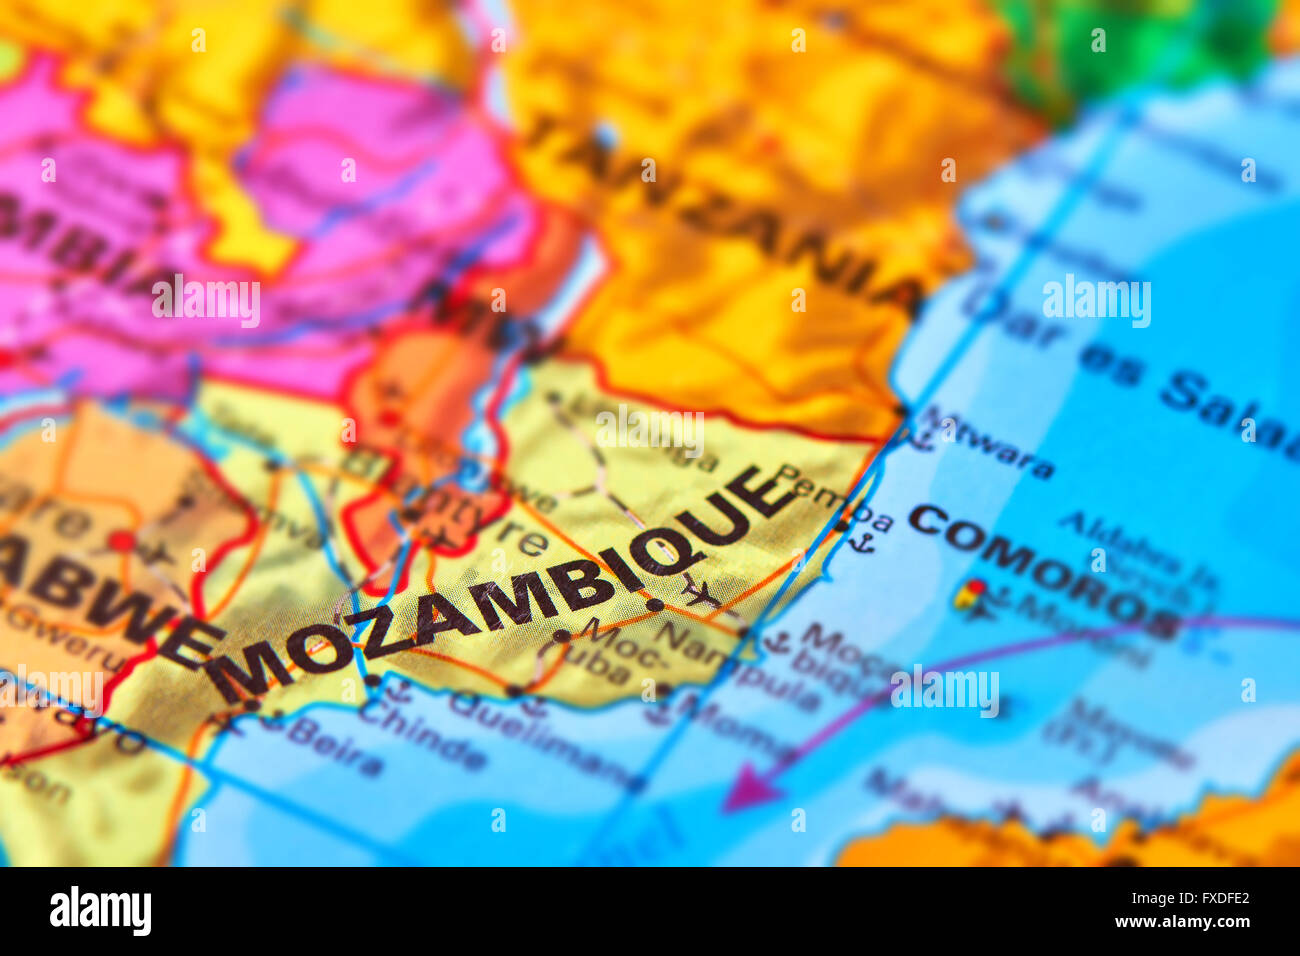 Mozambique Country in Africa on the World Map - Stock Image